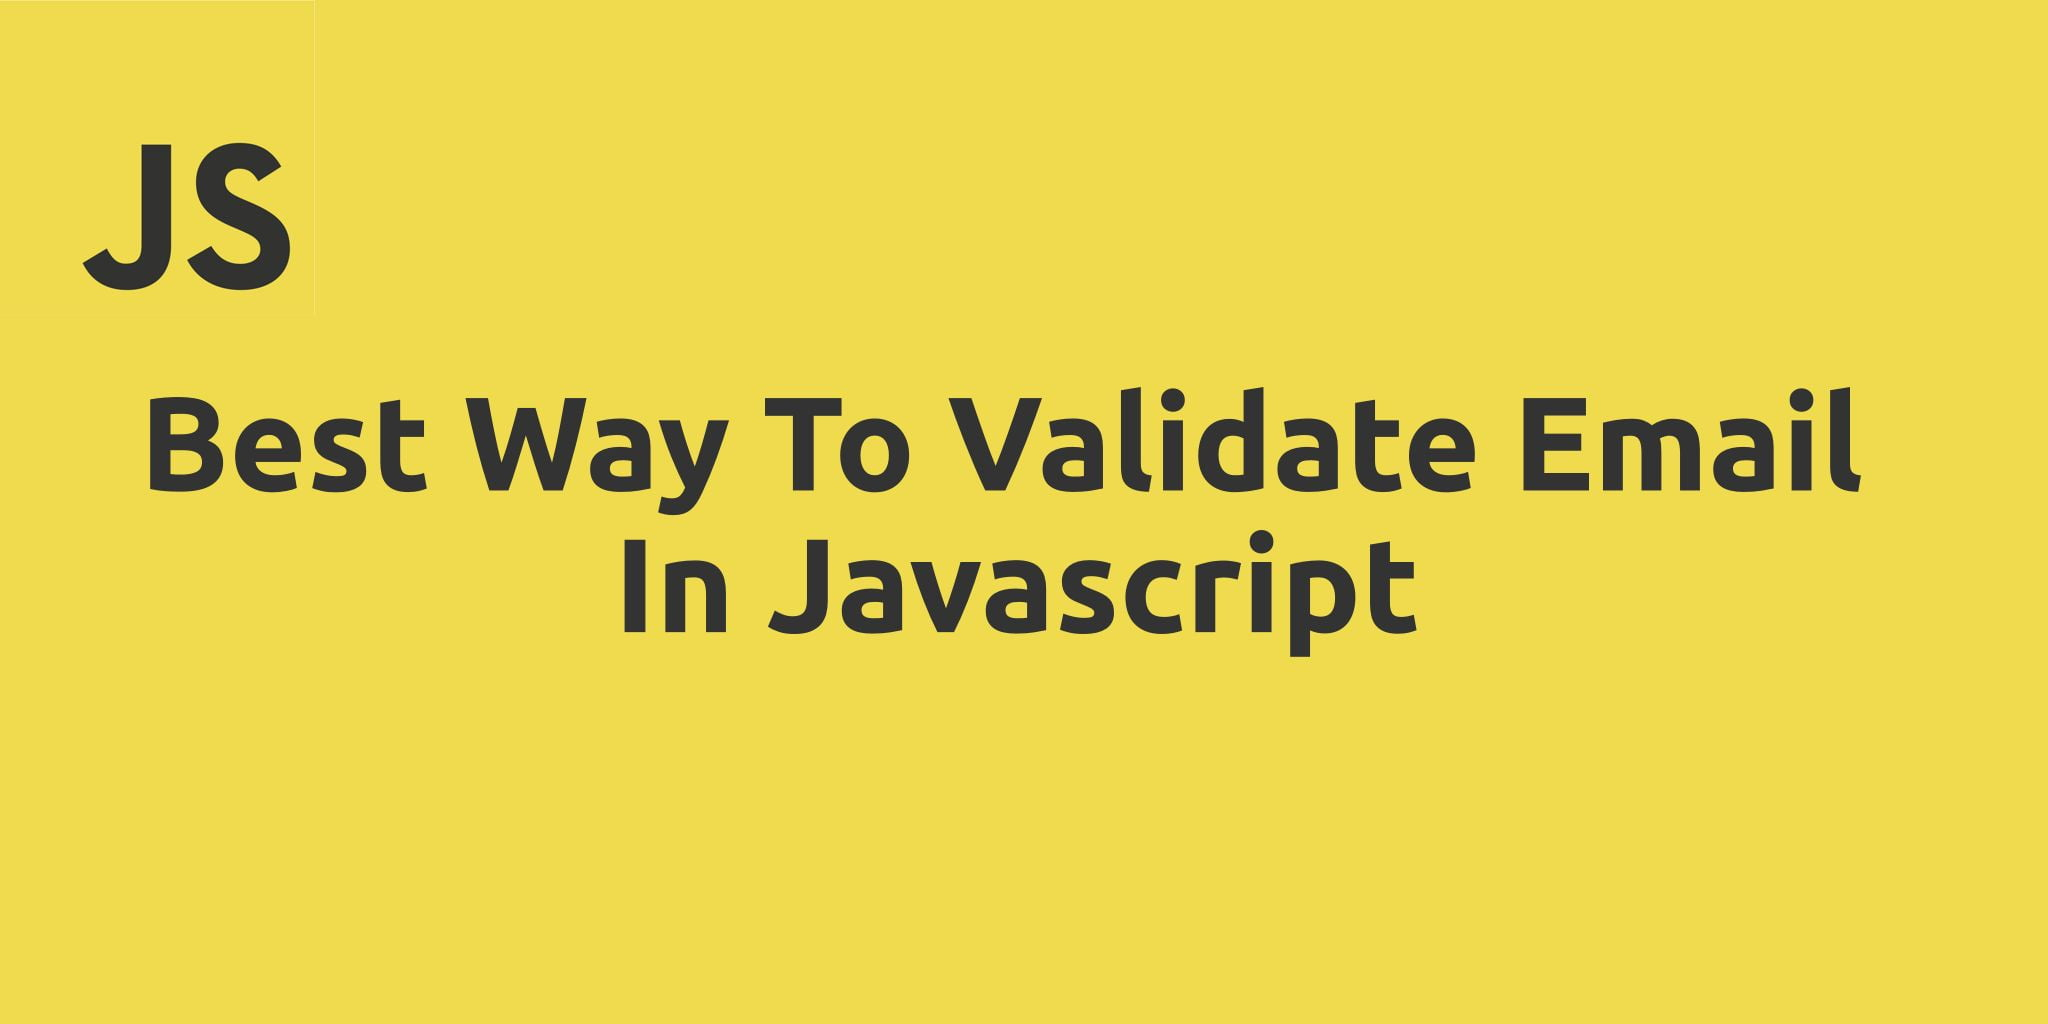 Best Way To Validate Email In Javascript